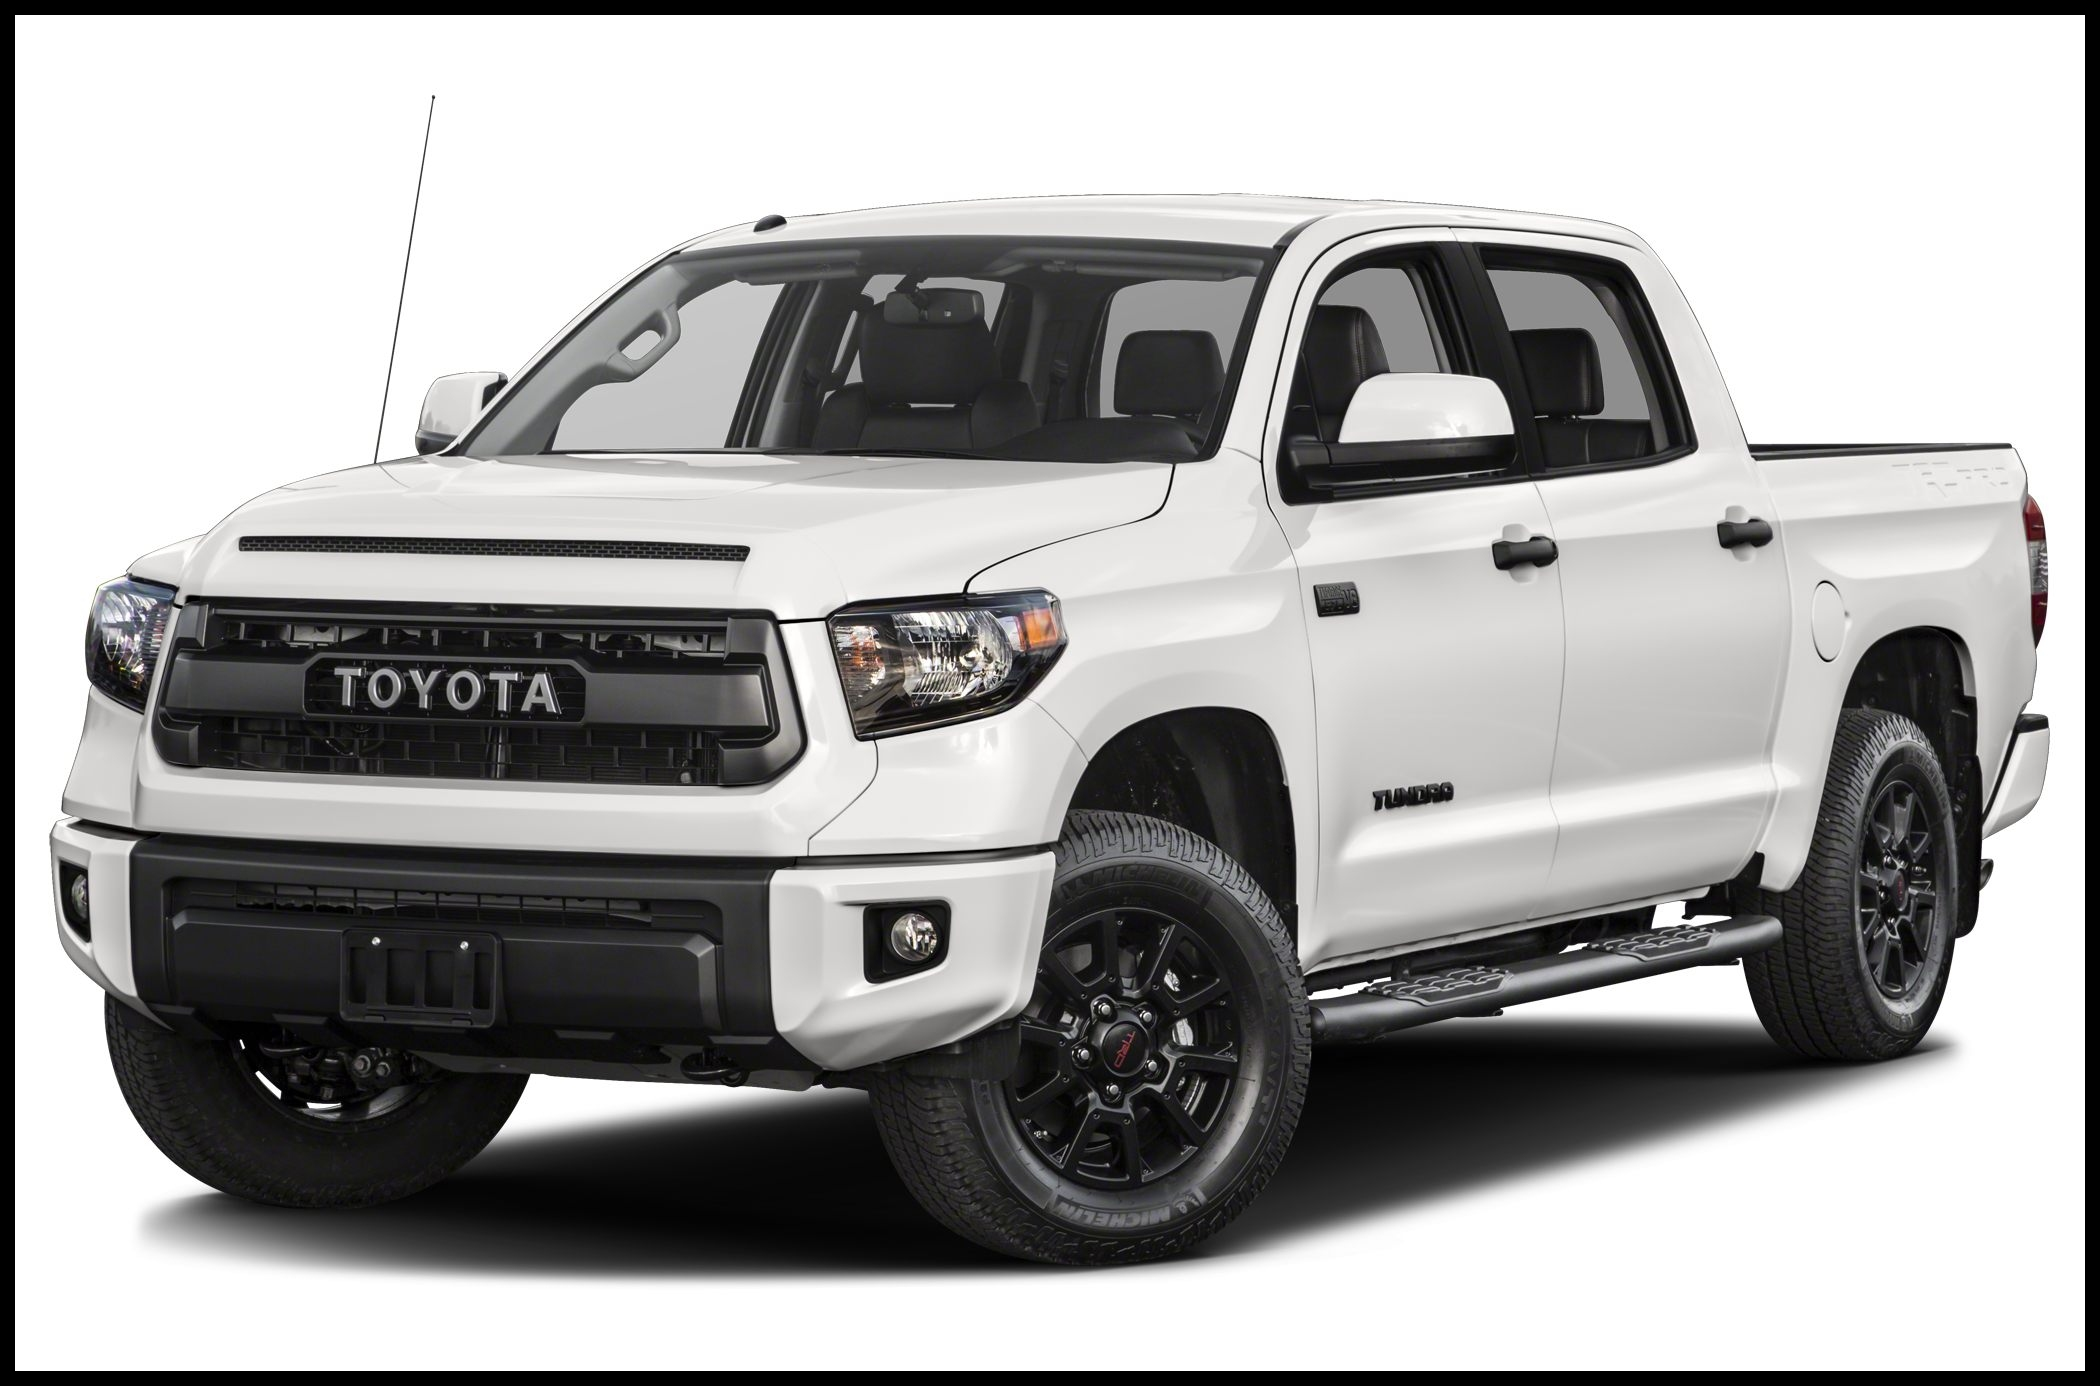 2017 Toyota Tundra TRD Pro 5 7L V8 w FFV 4x4 CrewMax 5 6 ft box 145 7 in WB Specs and Prices